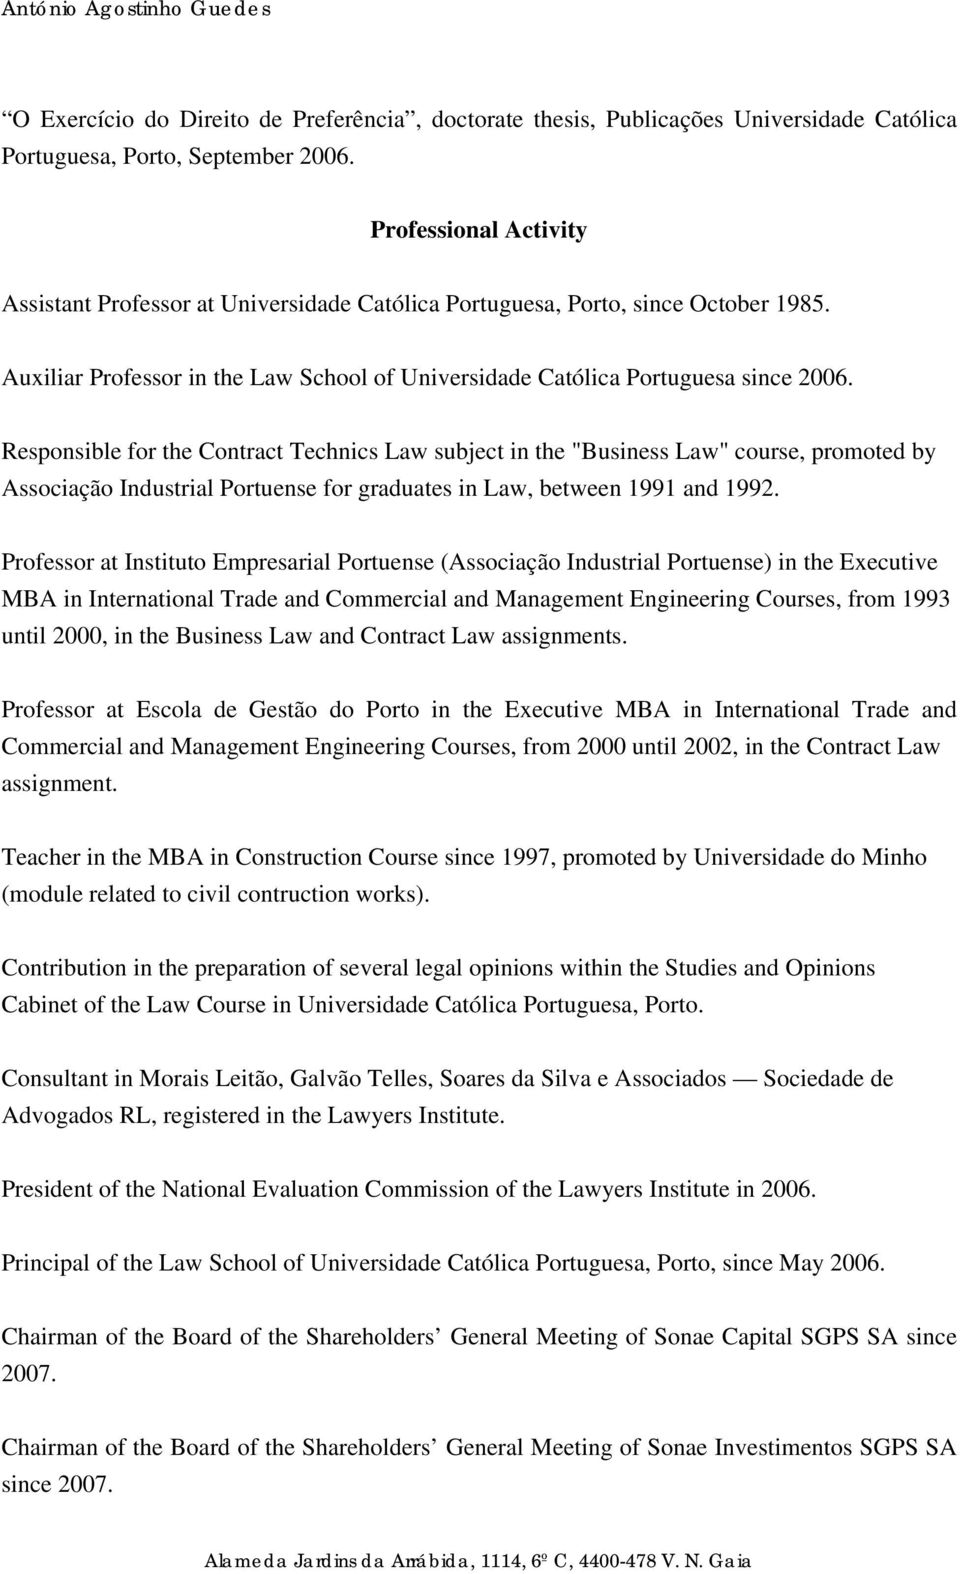 "Responsible for the Contract Technics Law subject in the ""Business Law"" course, promoted by Associação Industrial Portuense for graduates in Law, between 1991 and 1992."